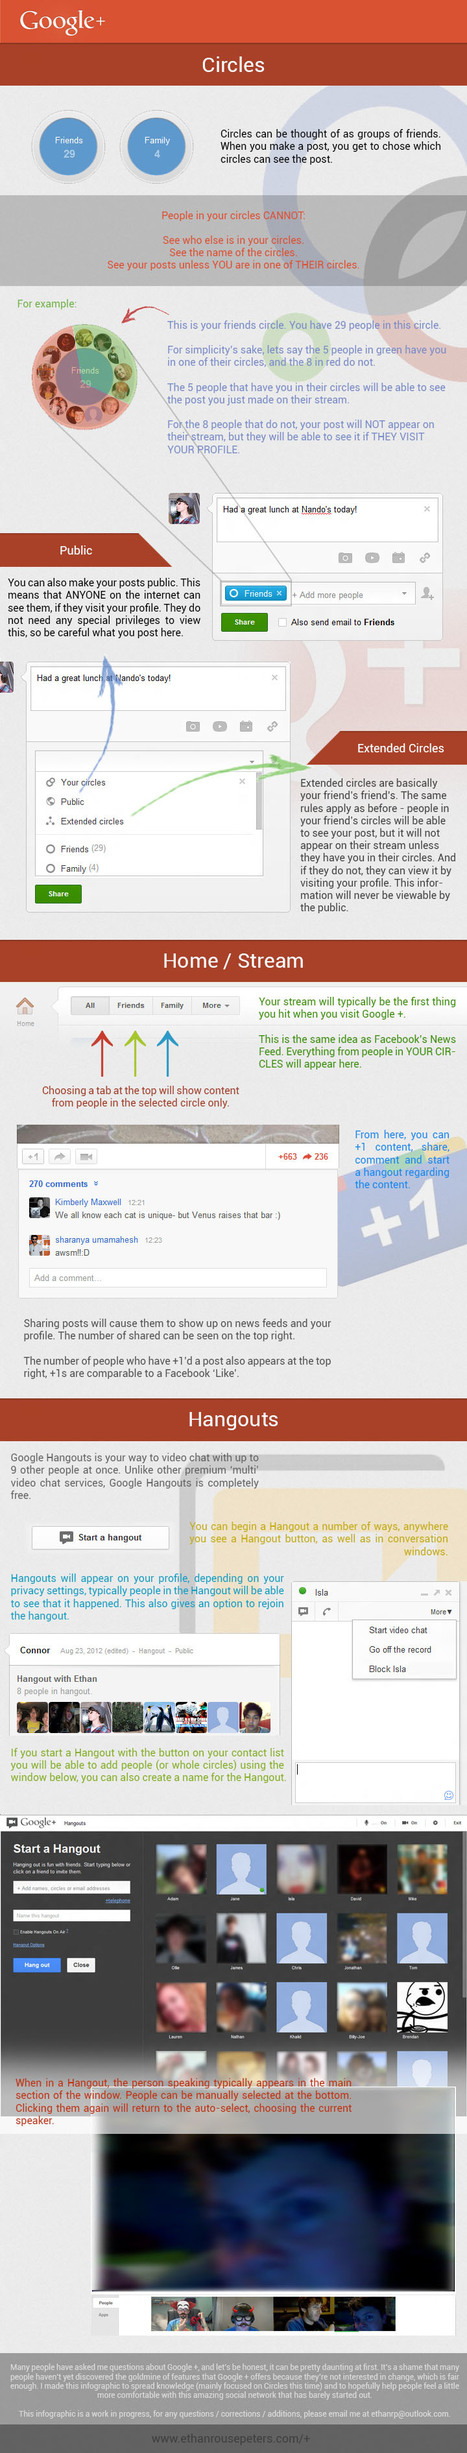 Google Plus Circles tutorial | Time to Learn | Scoop.it